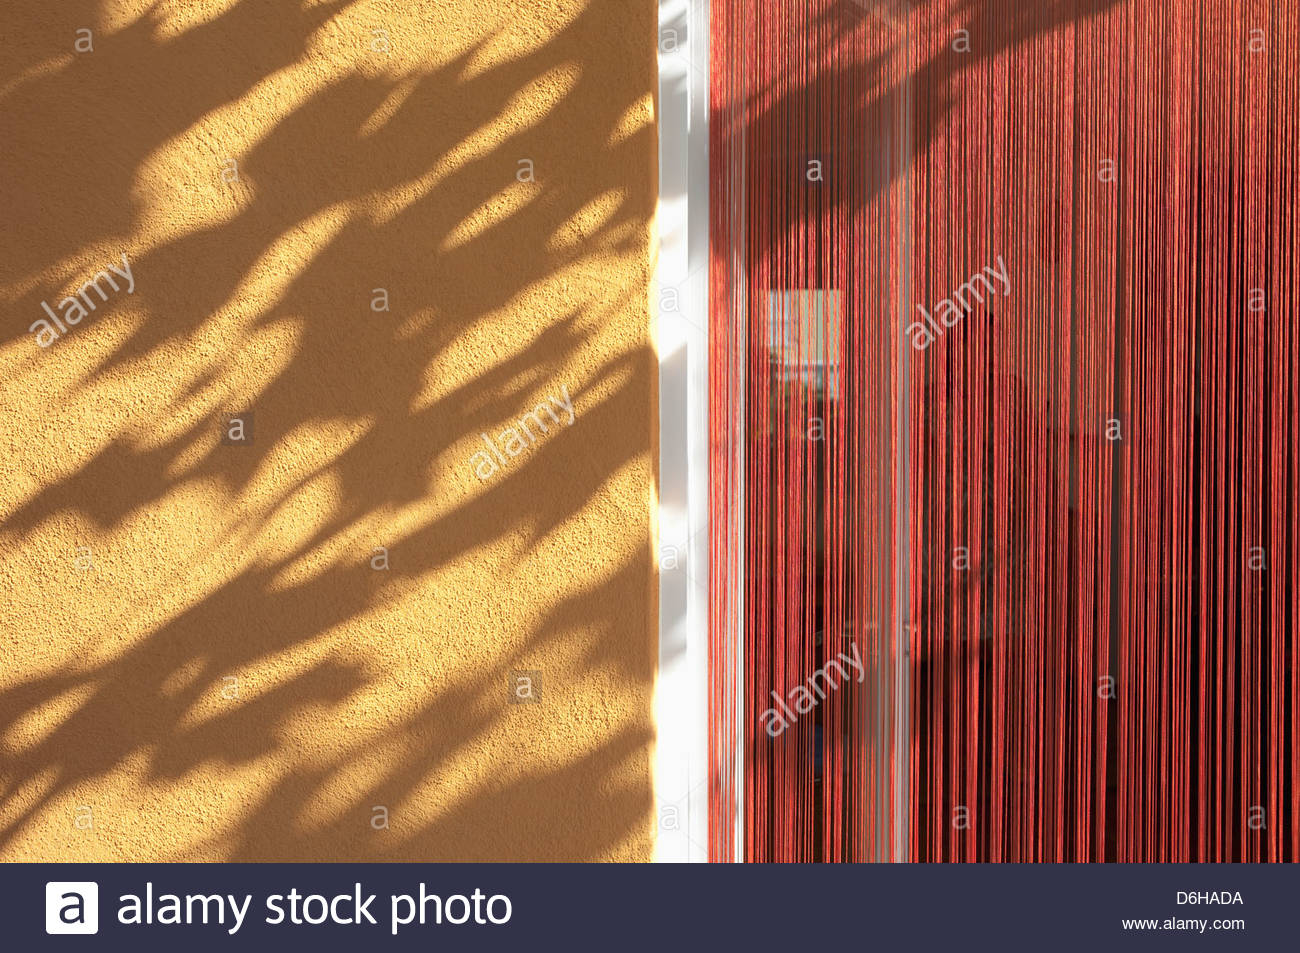 Rough cast wall shadow leaves sunlight doorway - Stock Image